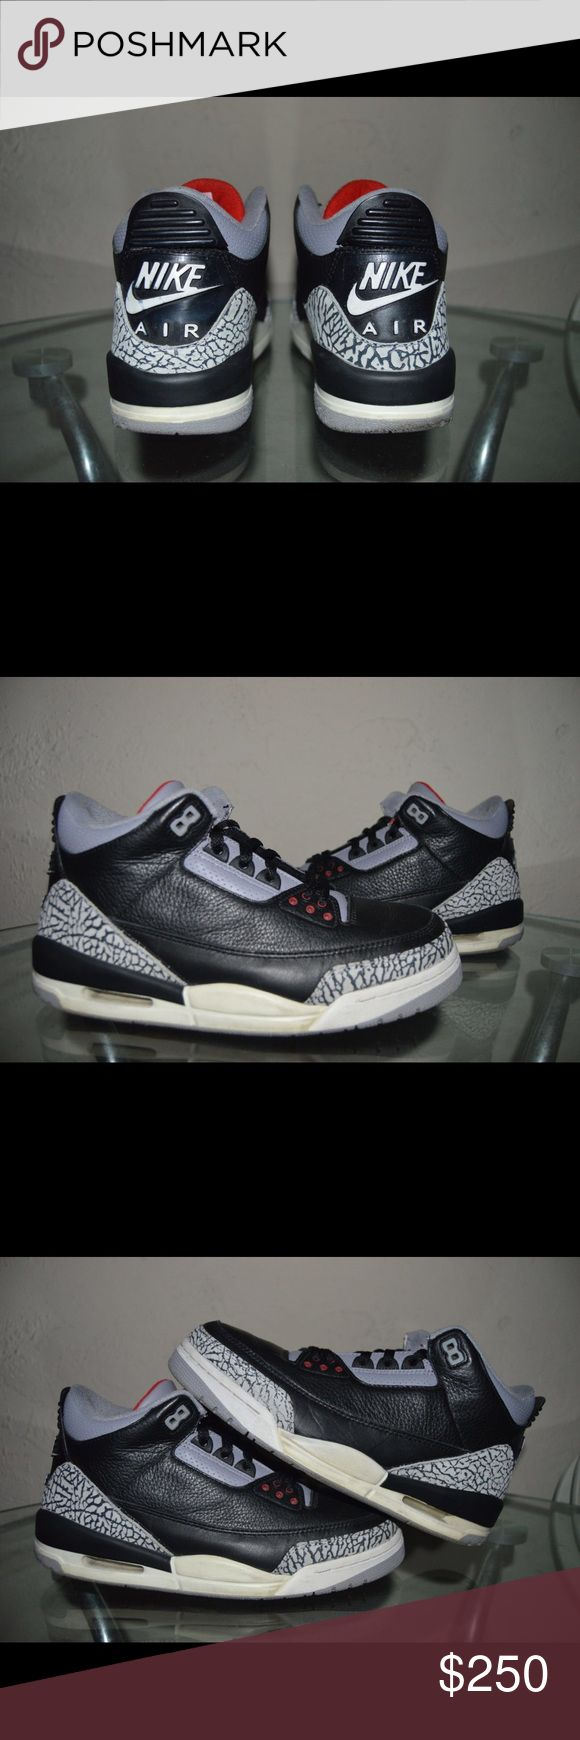 "2001 Nike Air Jordan Retro 3 ""Black Cement"" Size 9 100% Authentic Og Jordan 3s Not sure if wearable but midsole is still strong Upper Heel tab is kind of ripping off shown in picture Comes with Original everything Delivered and shipped out Now! Nike Shoes Sneakers"